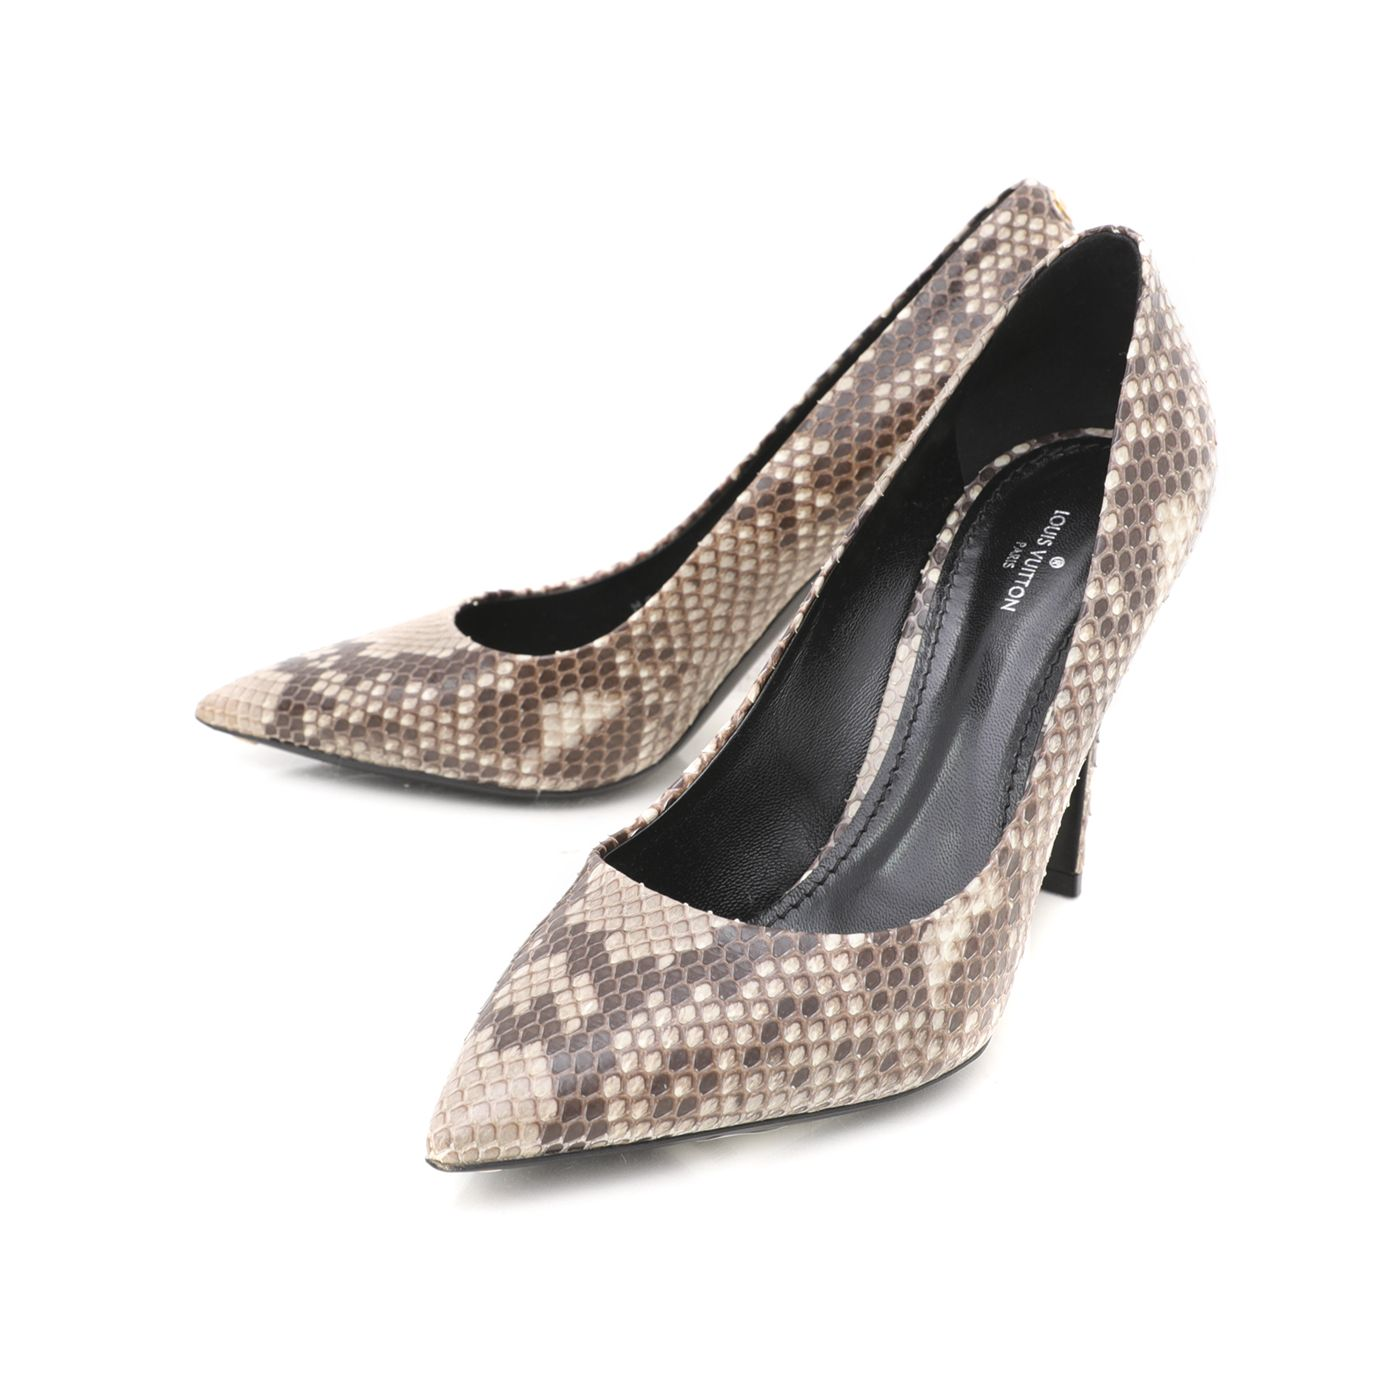 Louis Vuitton Bicolor Python Eyelibe Pointed Pumps 38